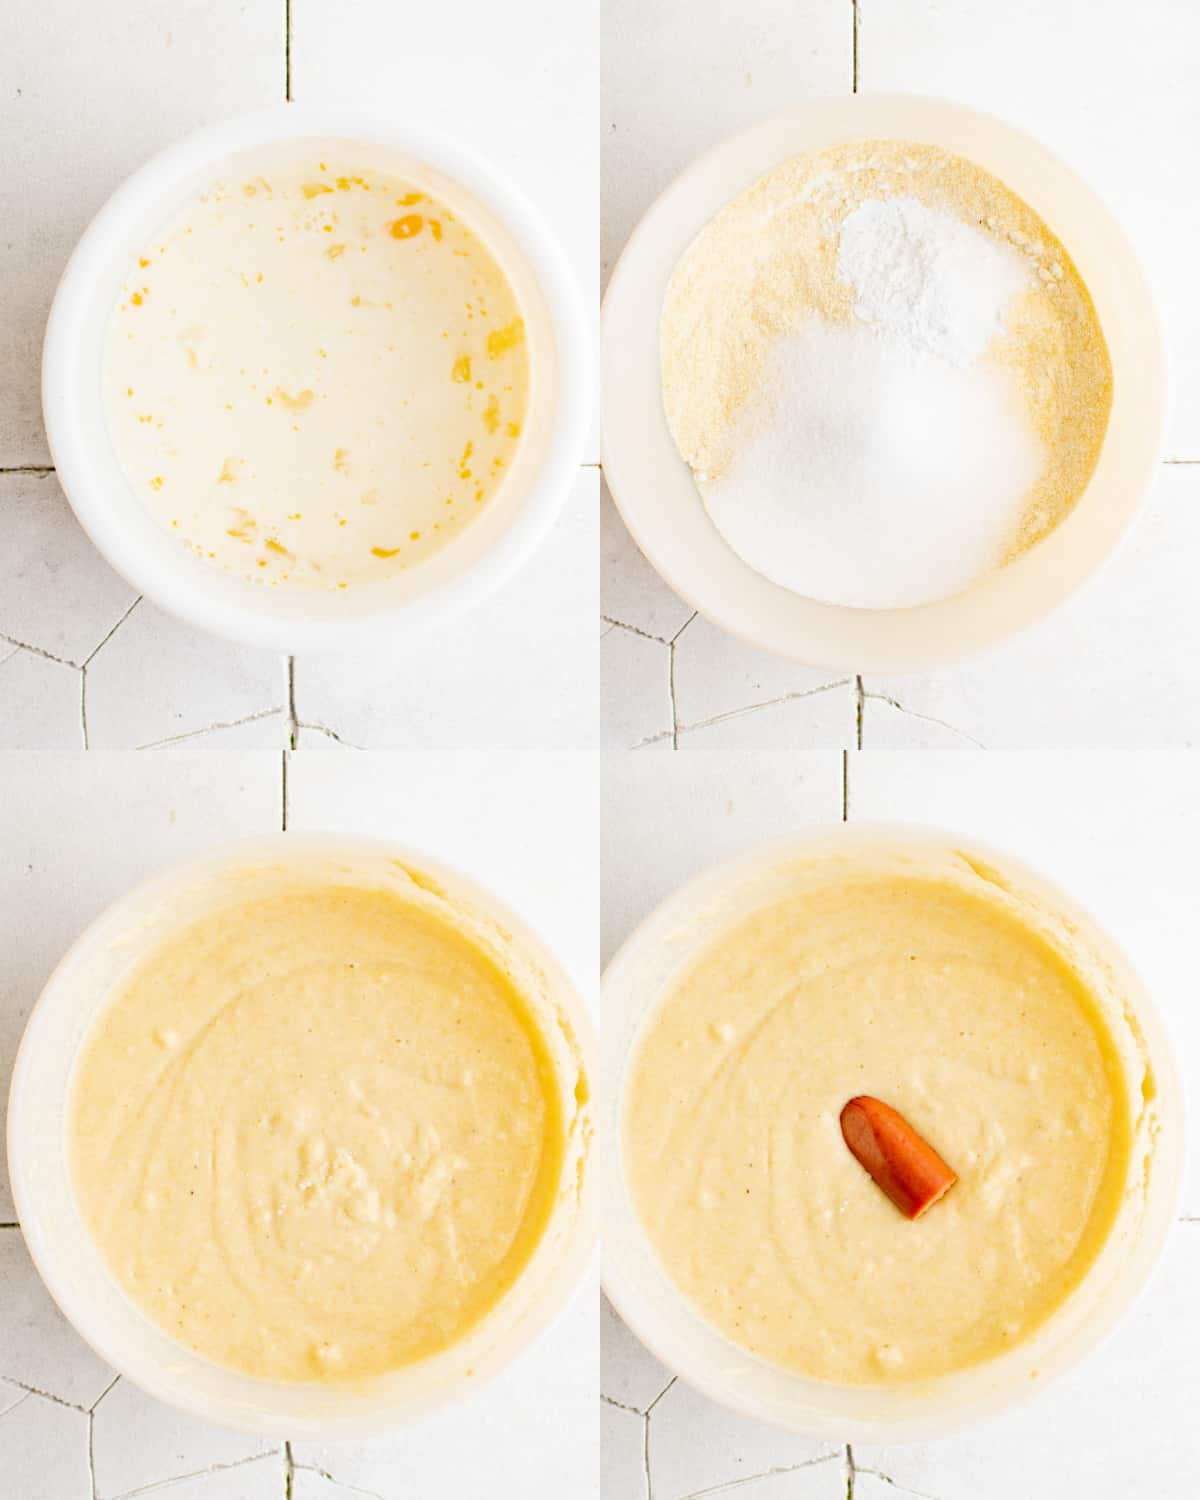 mixing together ingredients for corn dog batter in bowl